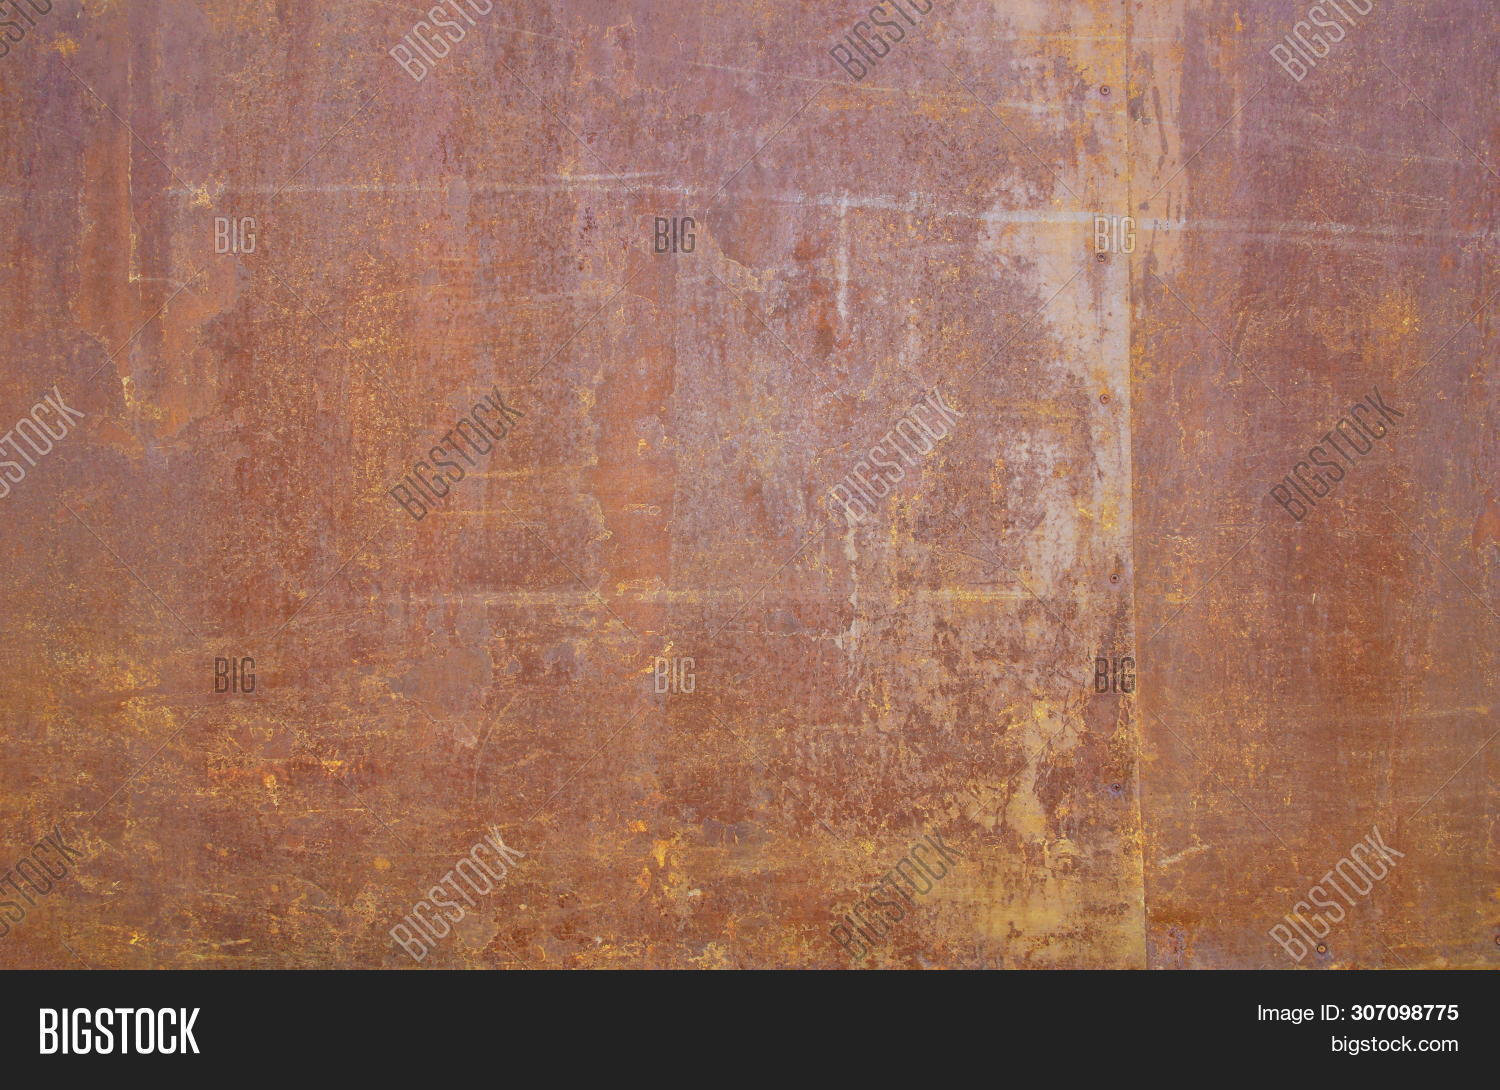 abstract,aged,background,black,brown,closeup,corroded,corrosion,damaged,dark,decoration,design,dirty,frame,grunge,grungy,hard,iron,material,metal,metallic,old,pattern,plate,red,retro,rough,rust,rusted,rustic,rusty,space,stain,steel,style,surface,texture,textured,vintage,wall,worn